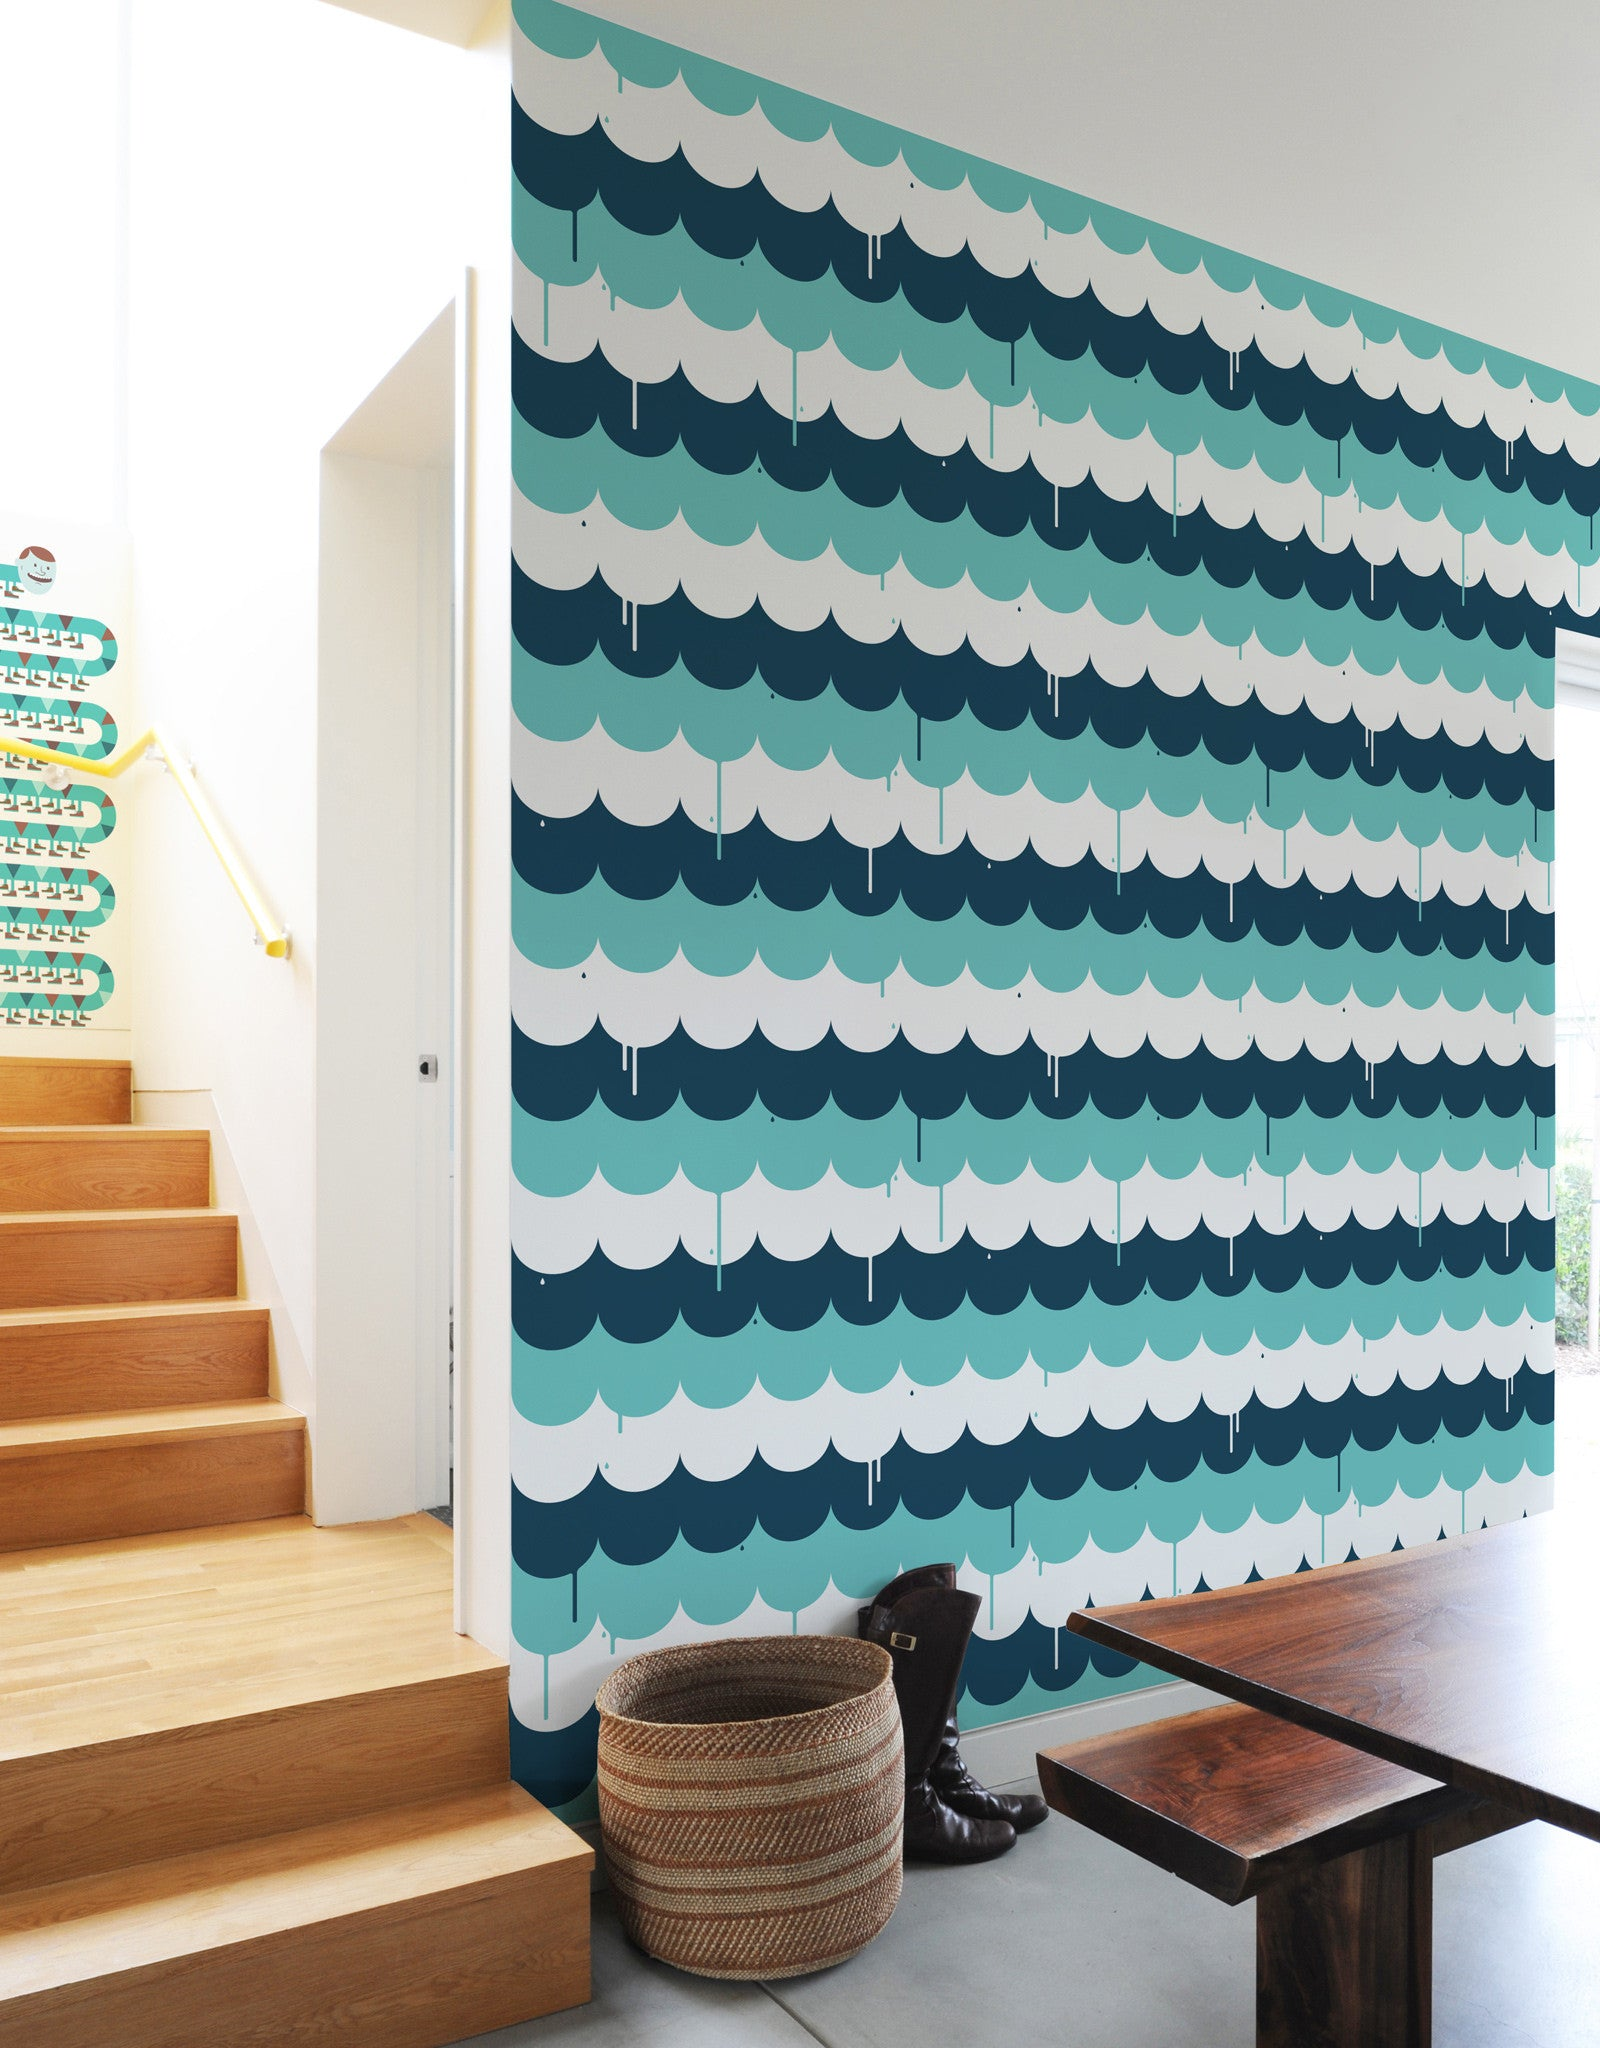 Scallop Tile Wall Decor | Patterned Fabric Wall Tiles | Blik